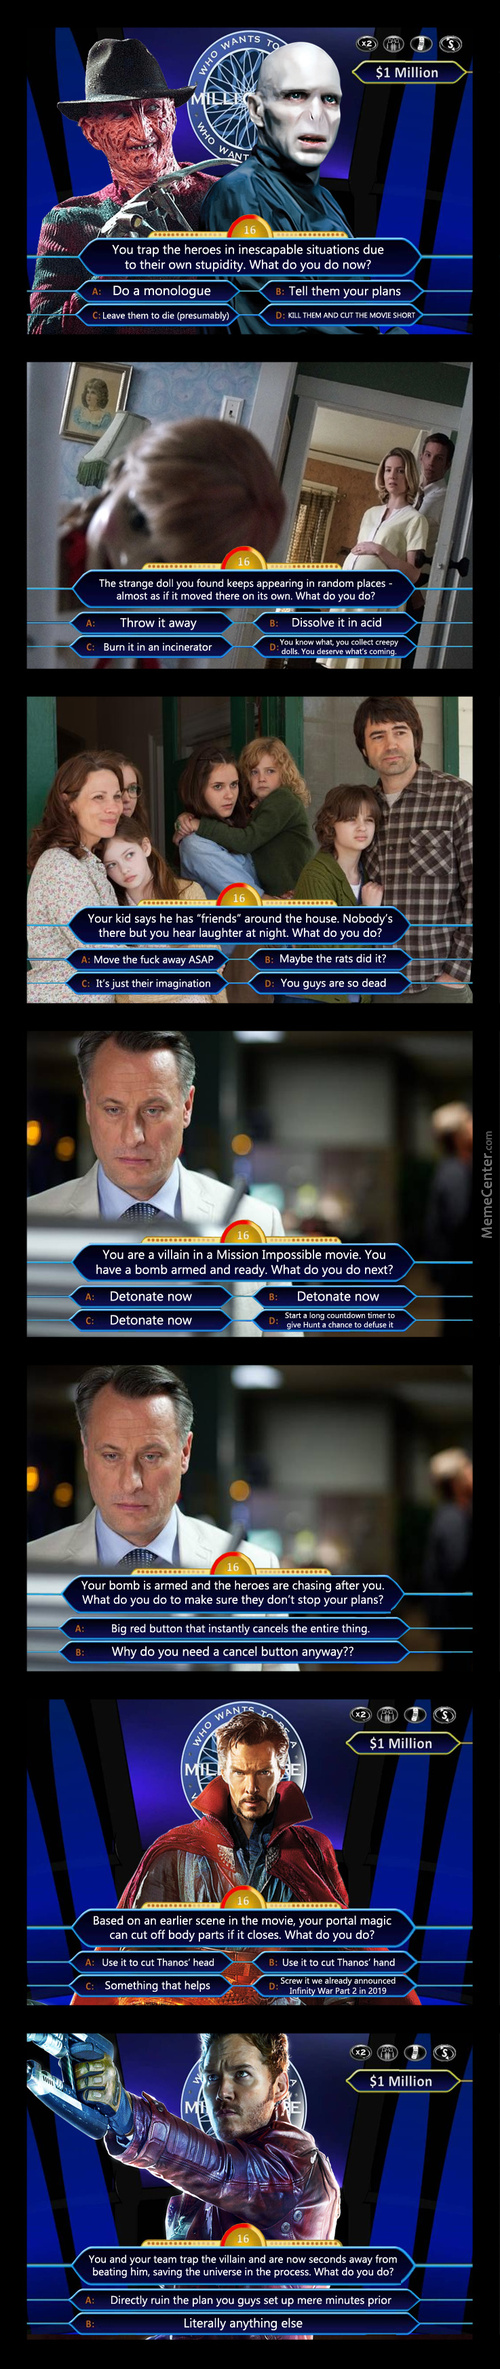 Who Wants To Be A Millionaire: Movie Edition